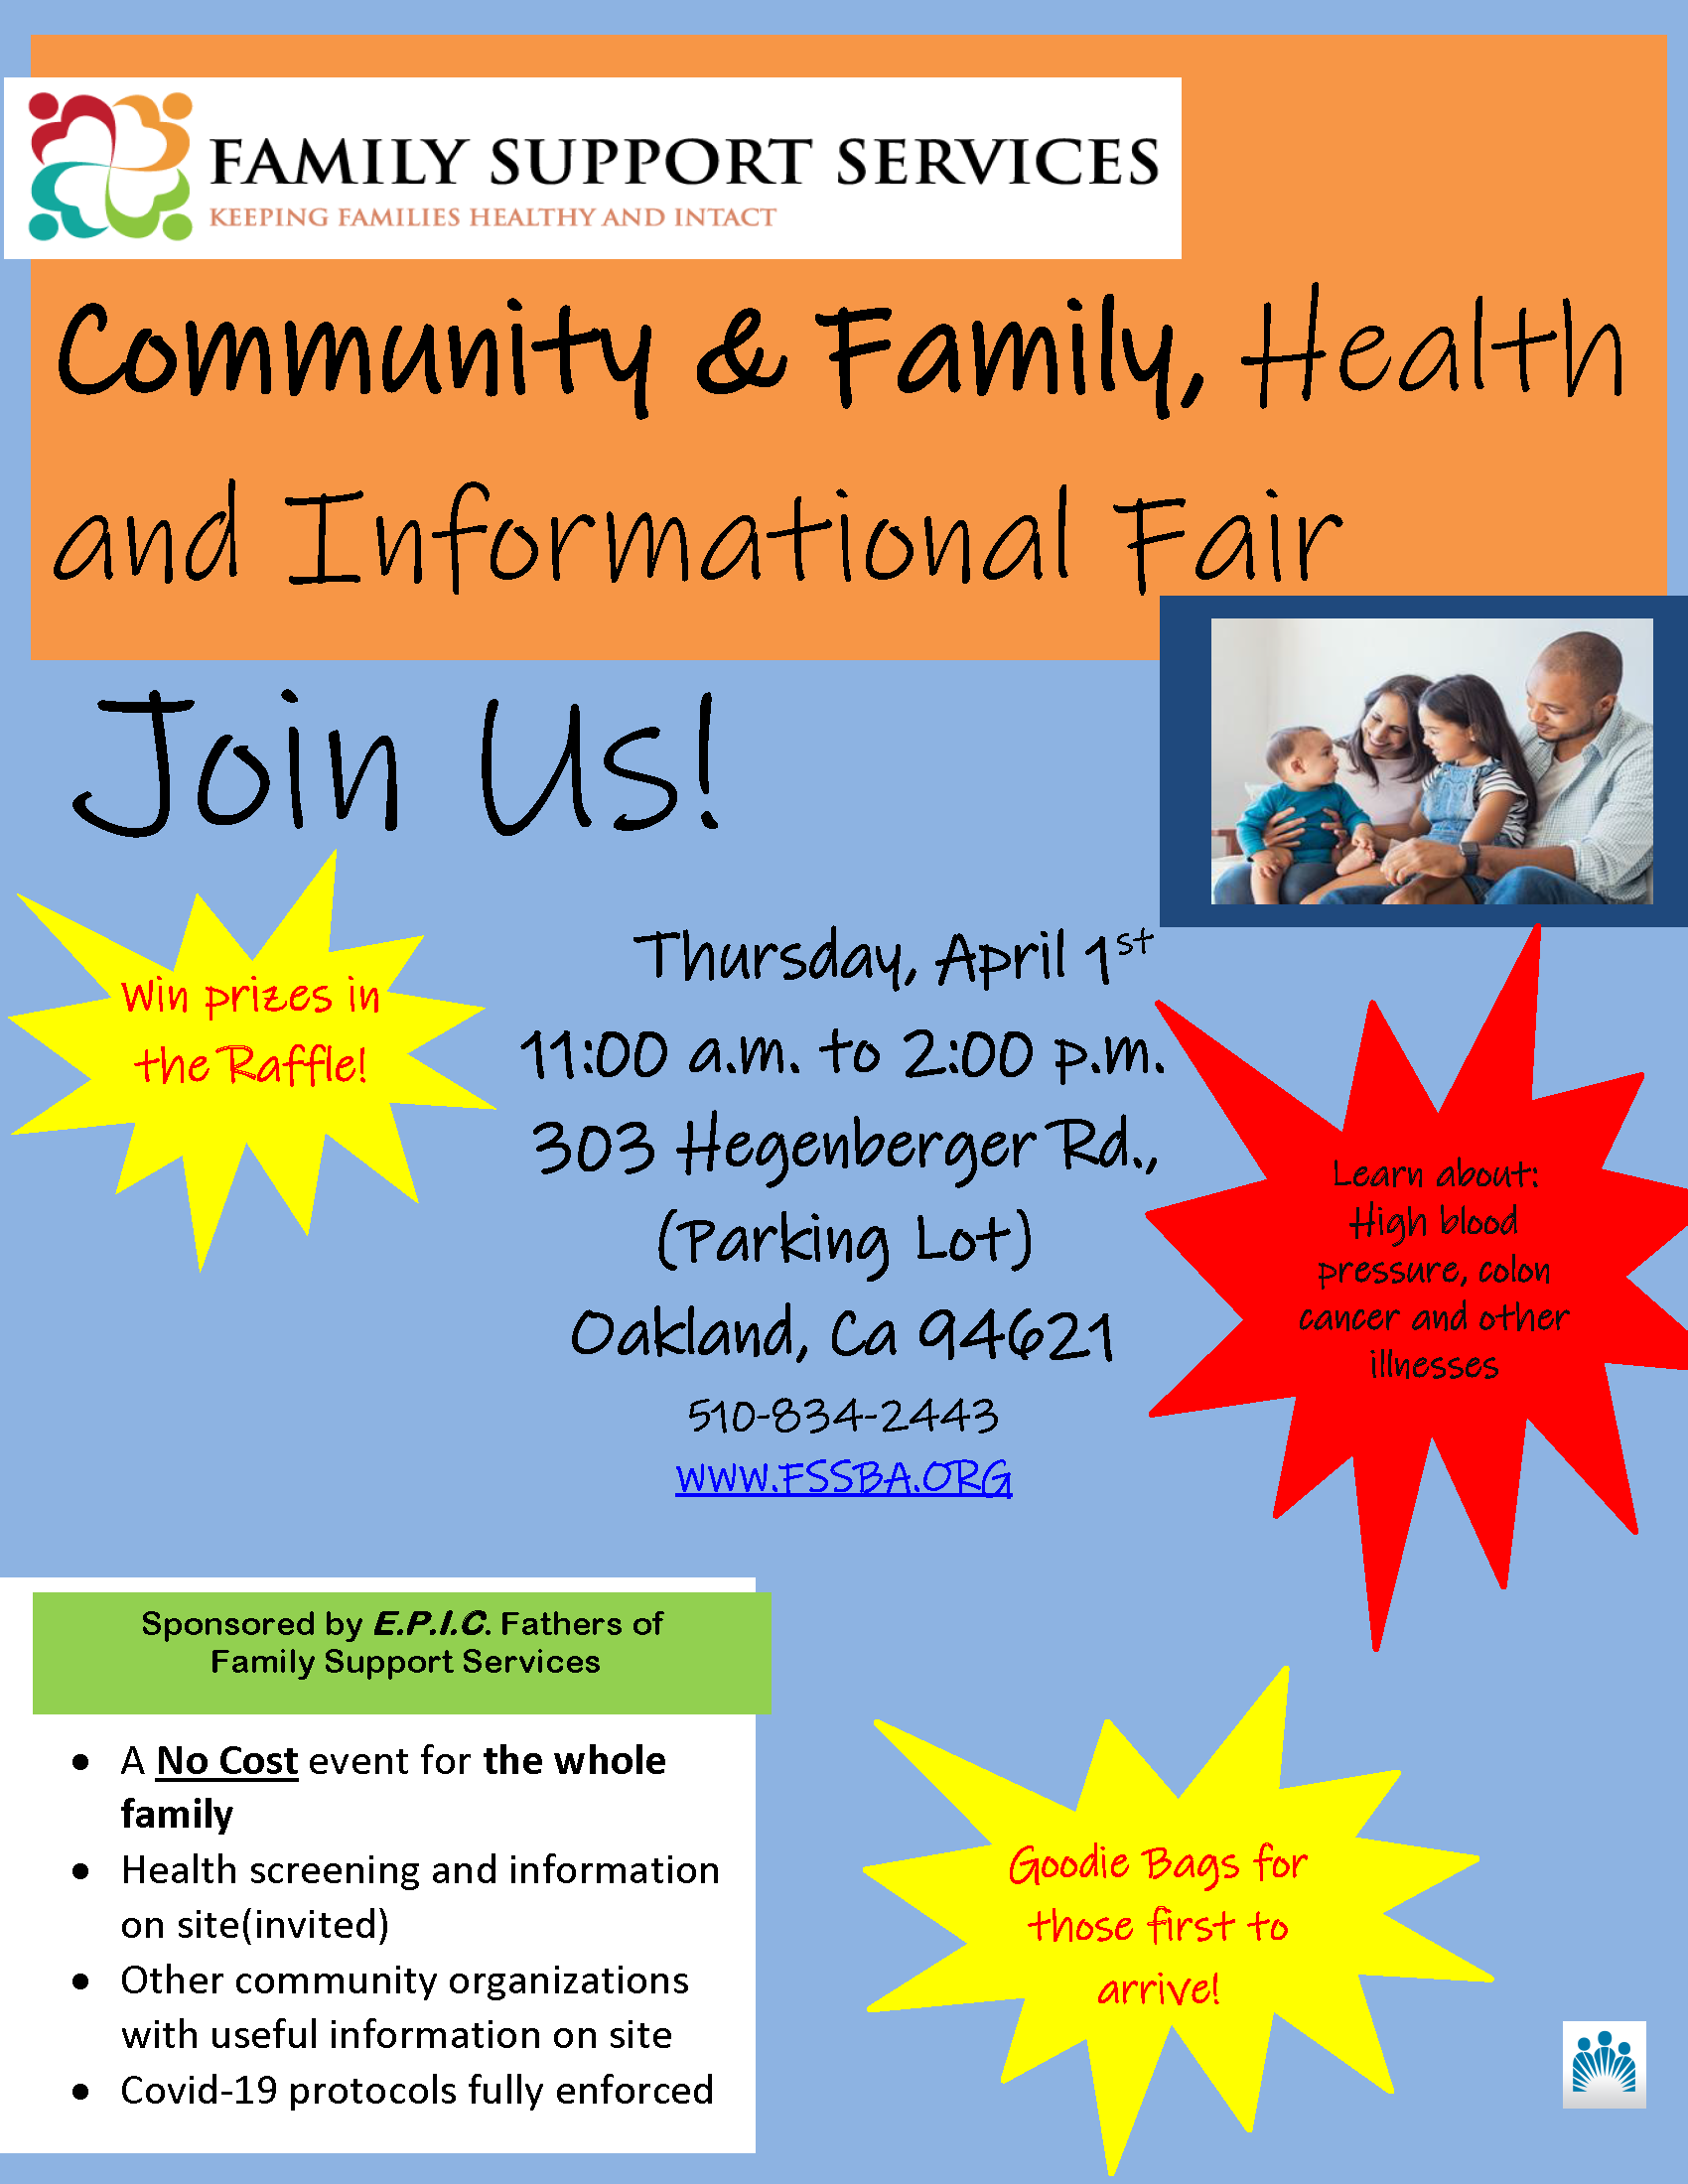 Community Health and Information Fair